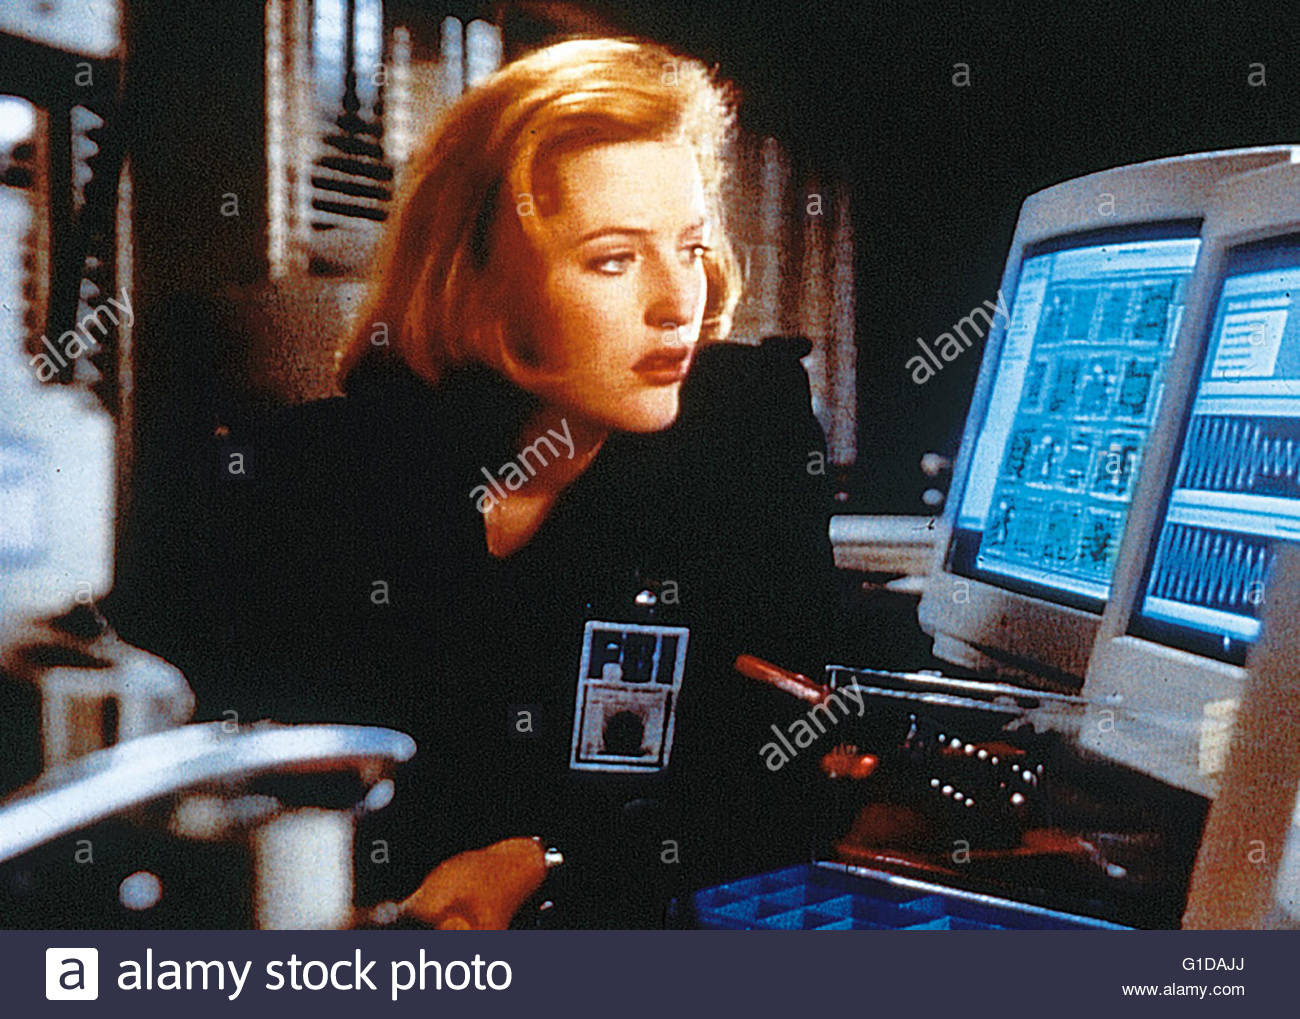 Akte X - Akte  / Gillian Anderson / The X-Files, - Stock Image